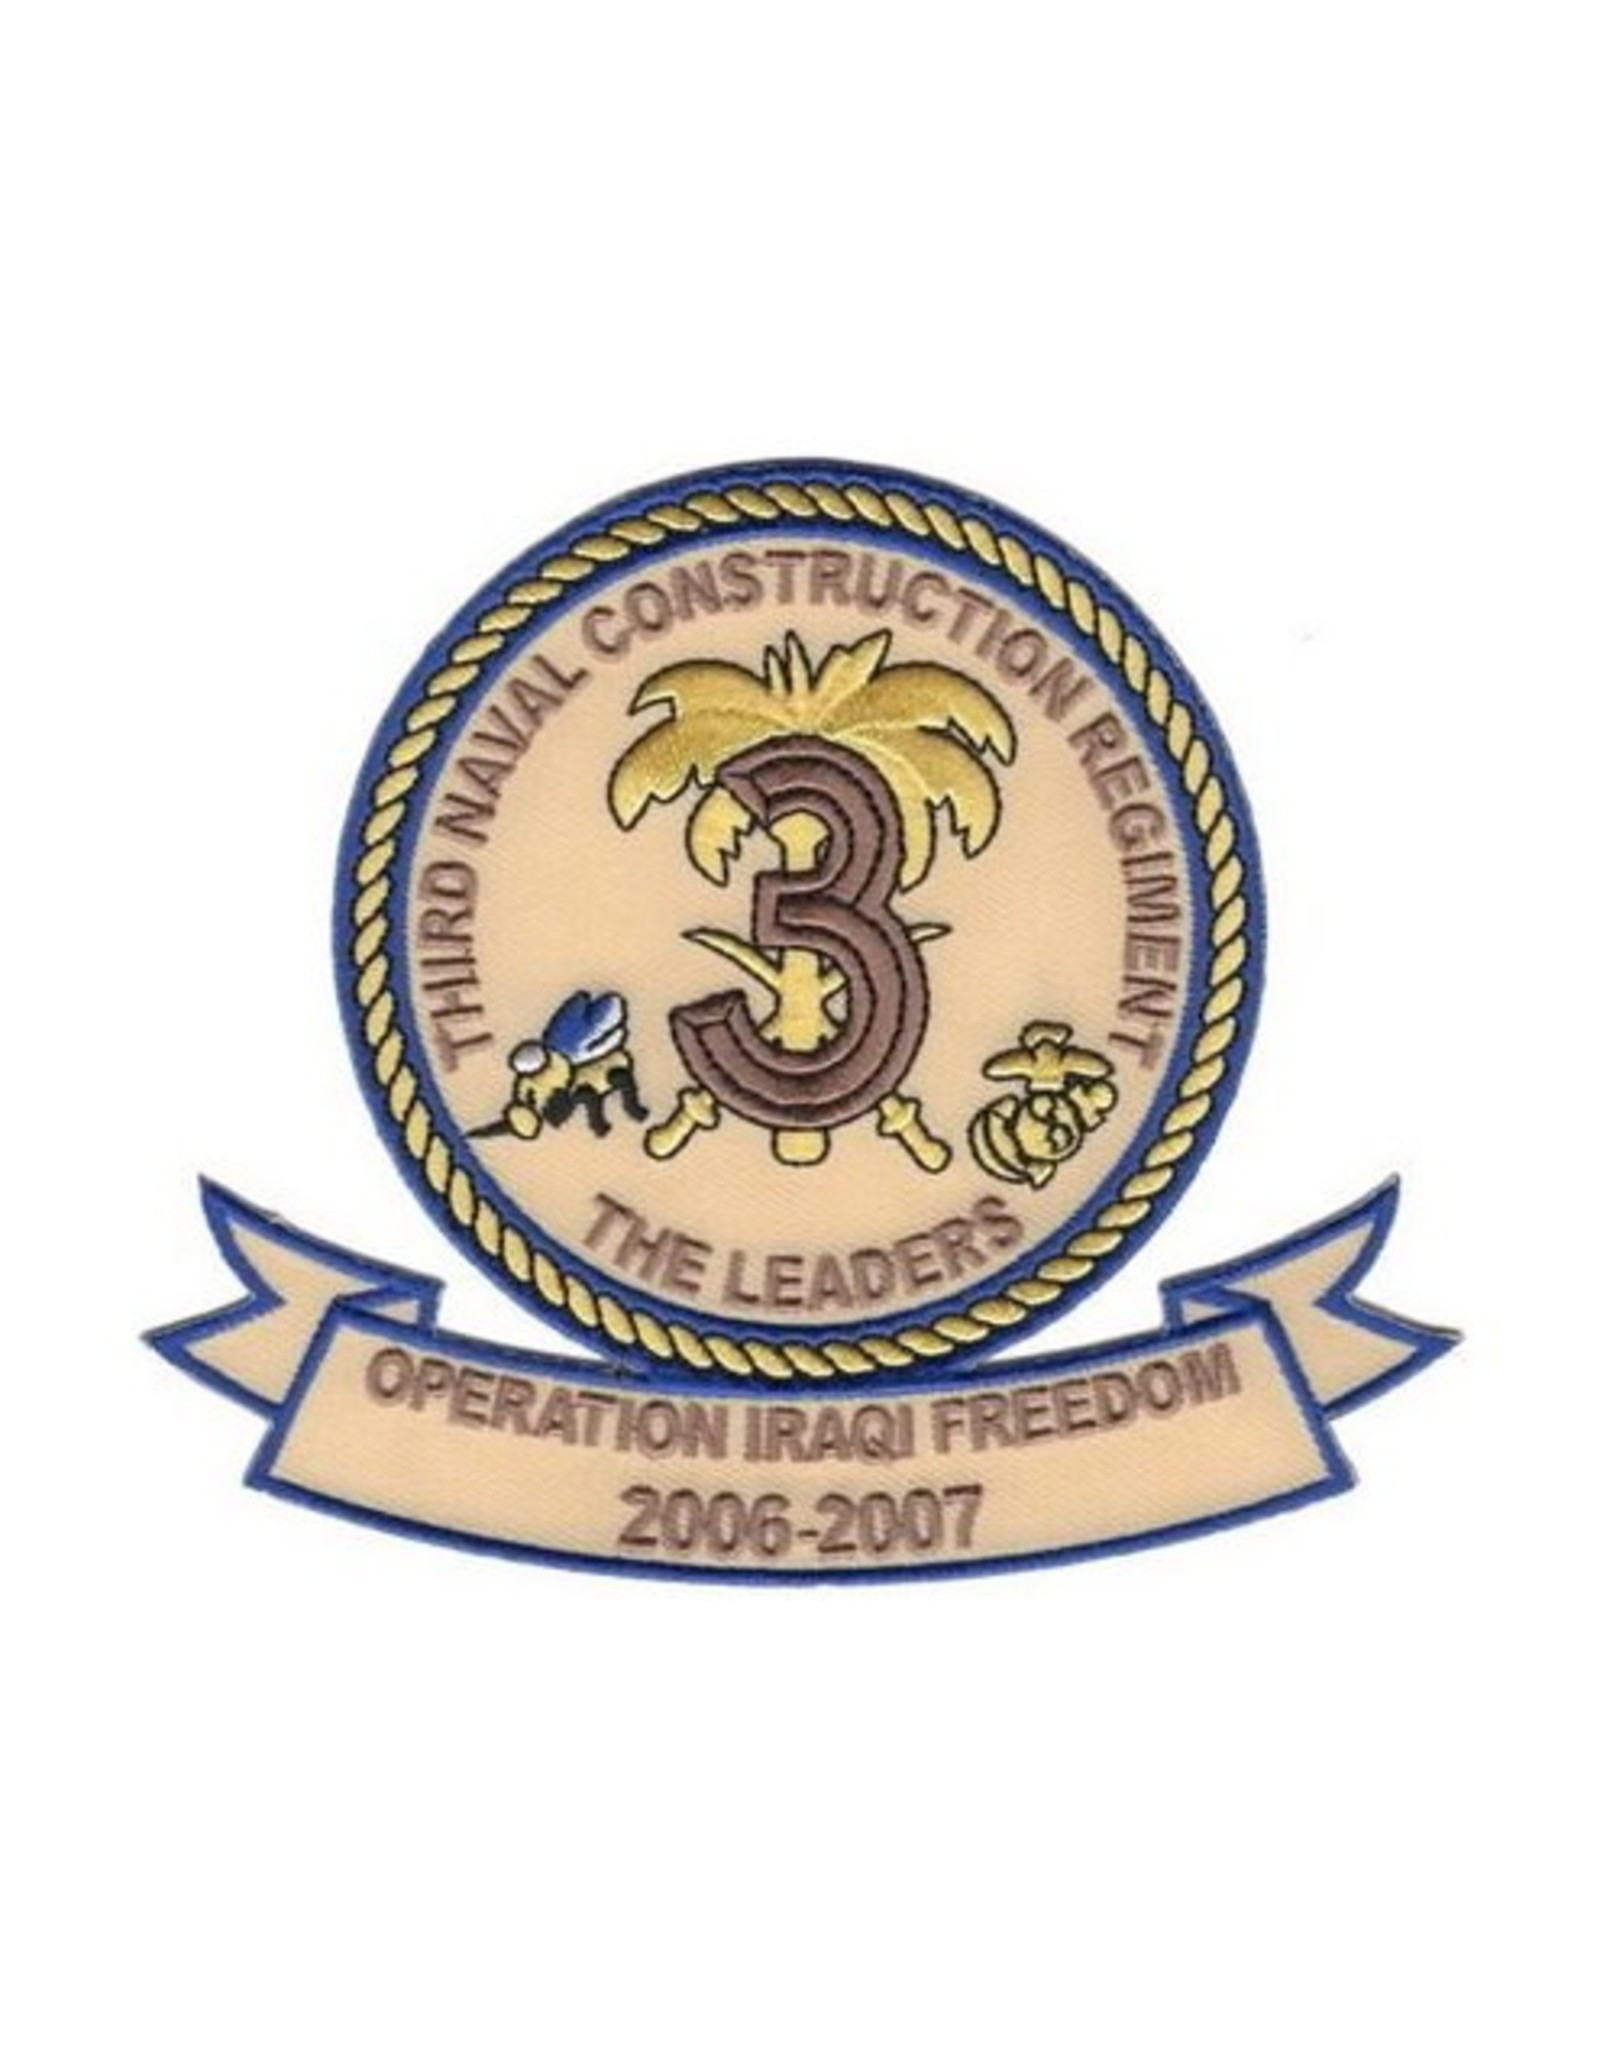 """MidMil Embroidered Third Naval Construction Regiment Operation Iraqi Freedom 2006-2007Patch 4.5"""" wide x 4.2"""" high"""